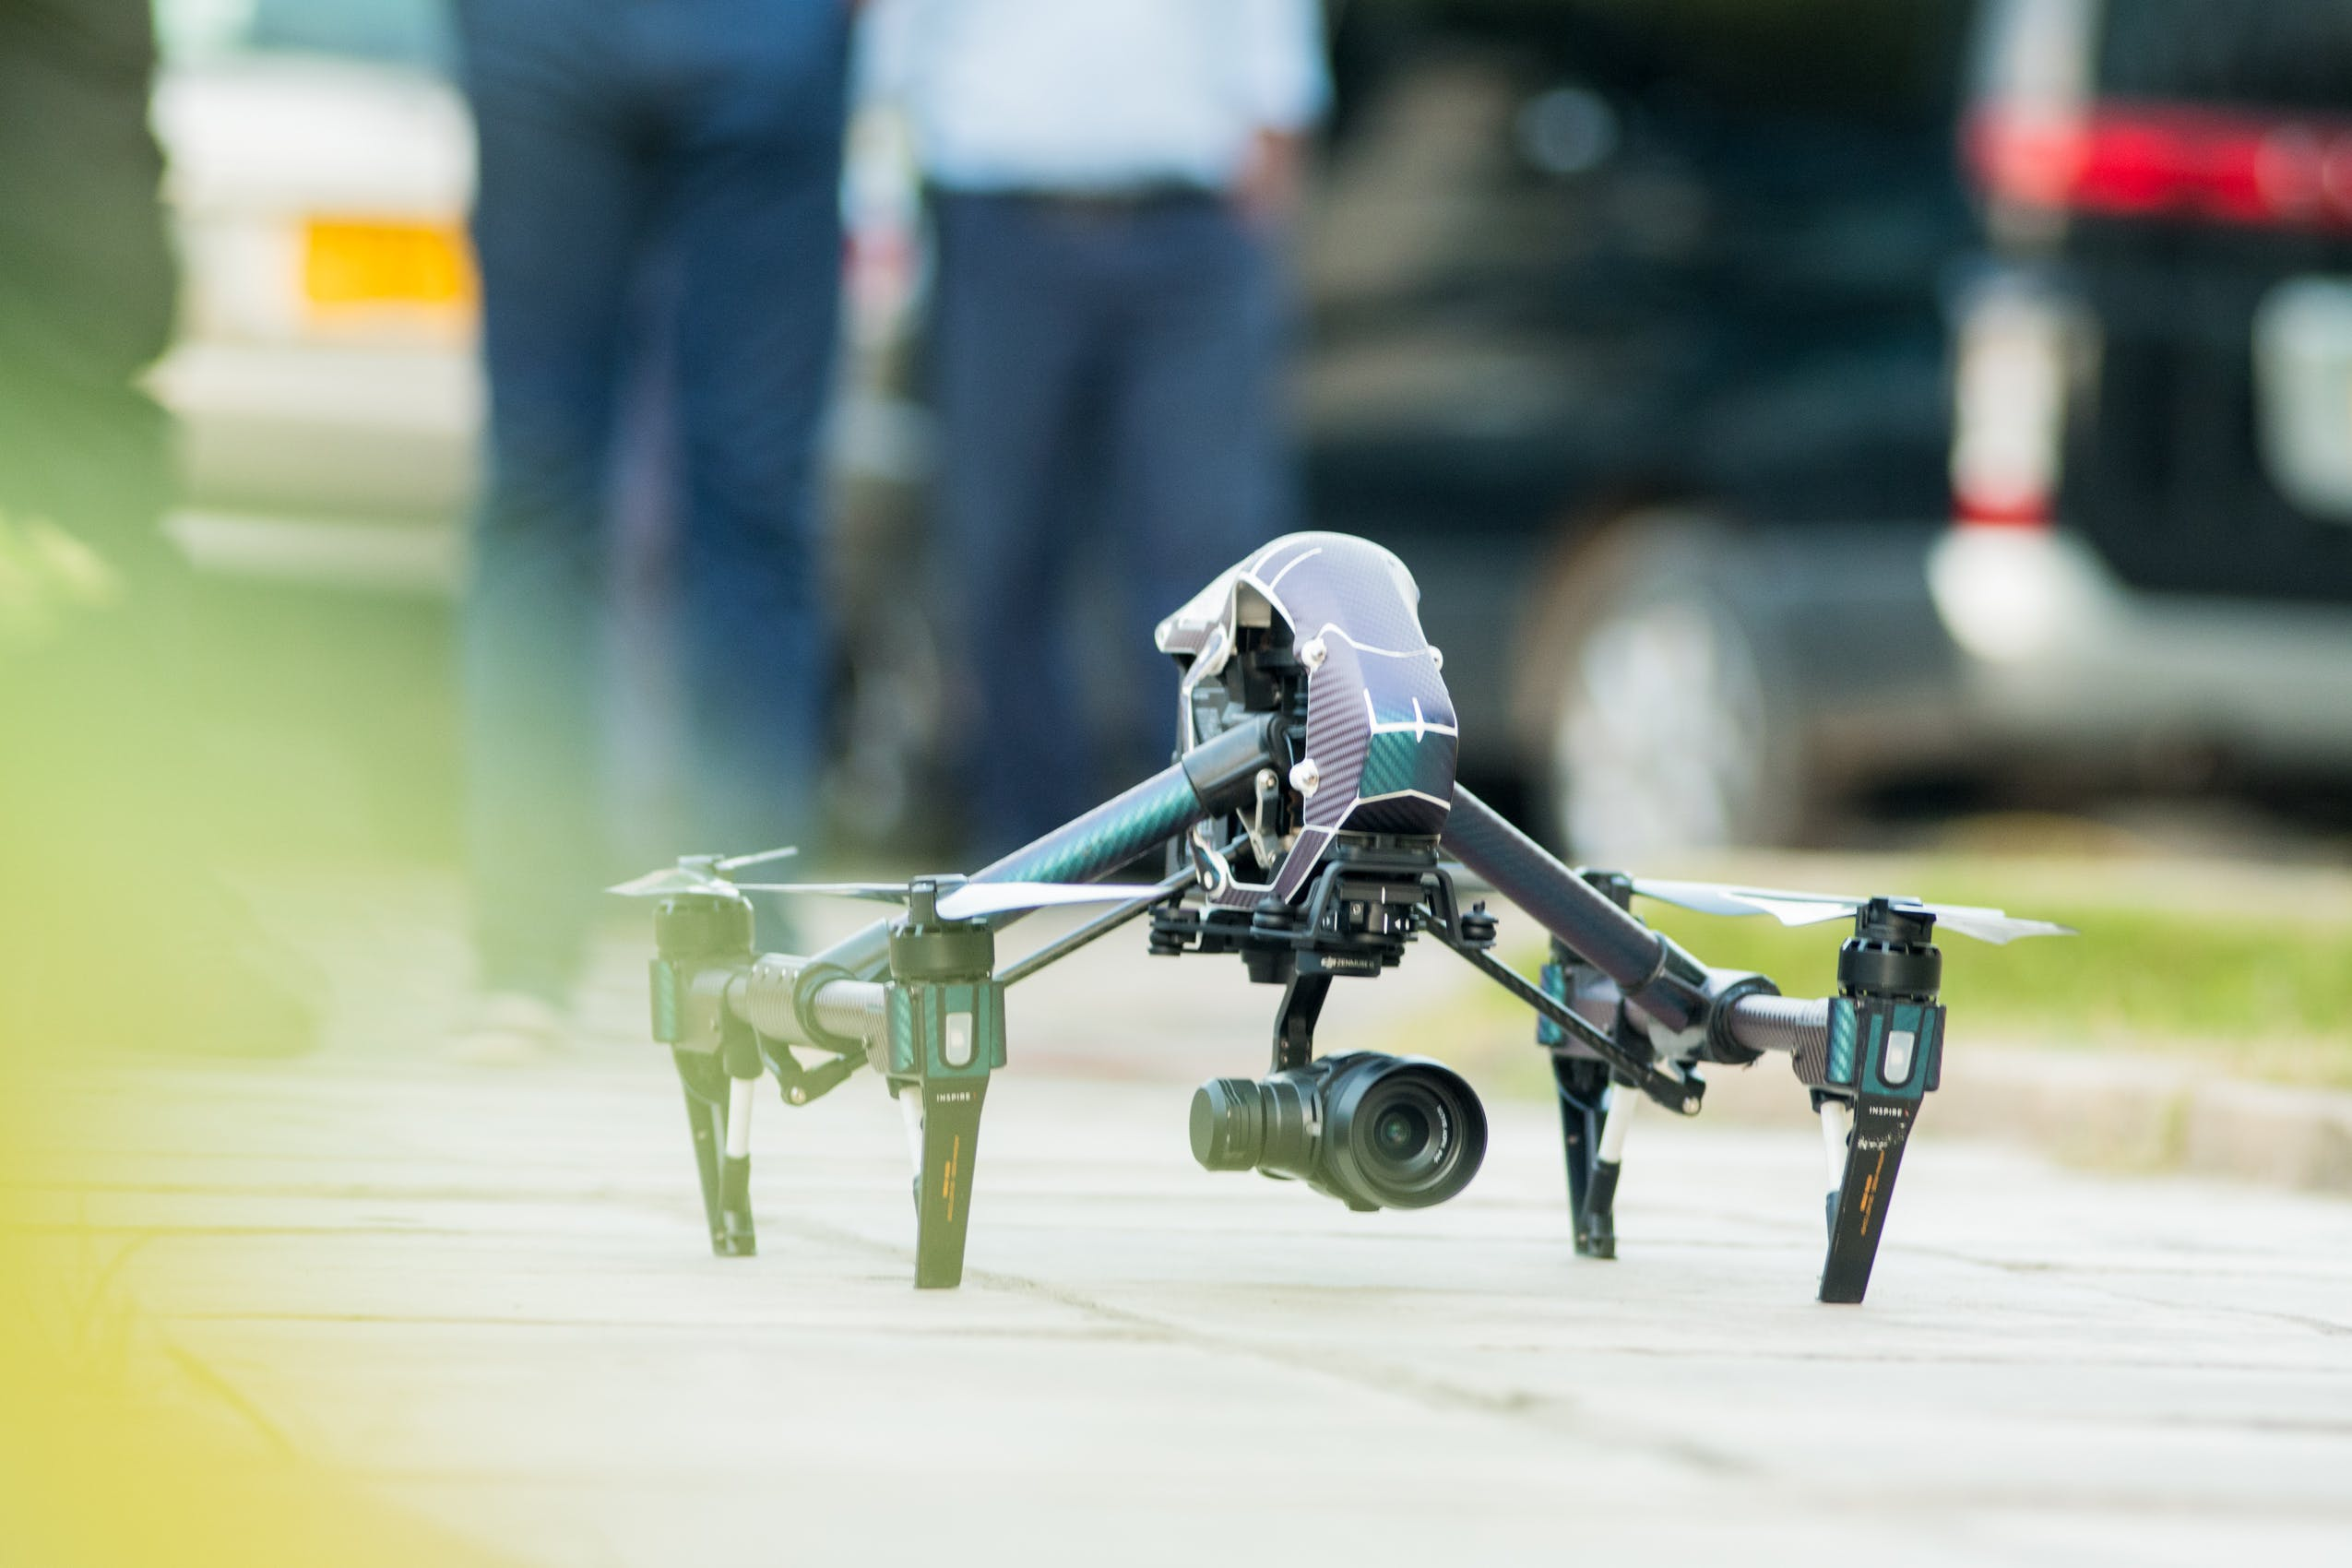 Gray and Green Quadcopter Drone on Ground